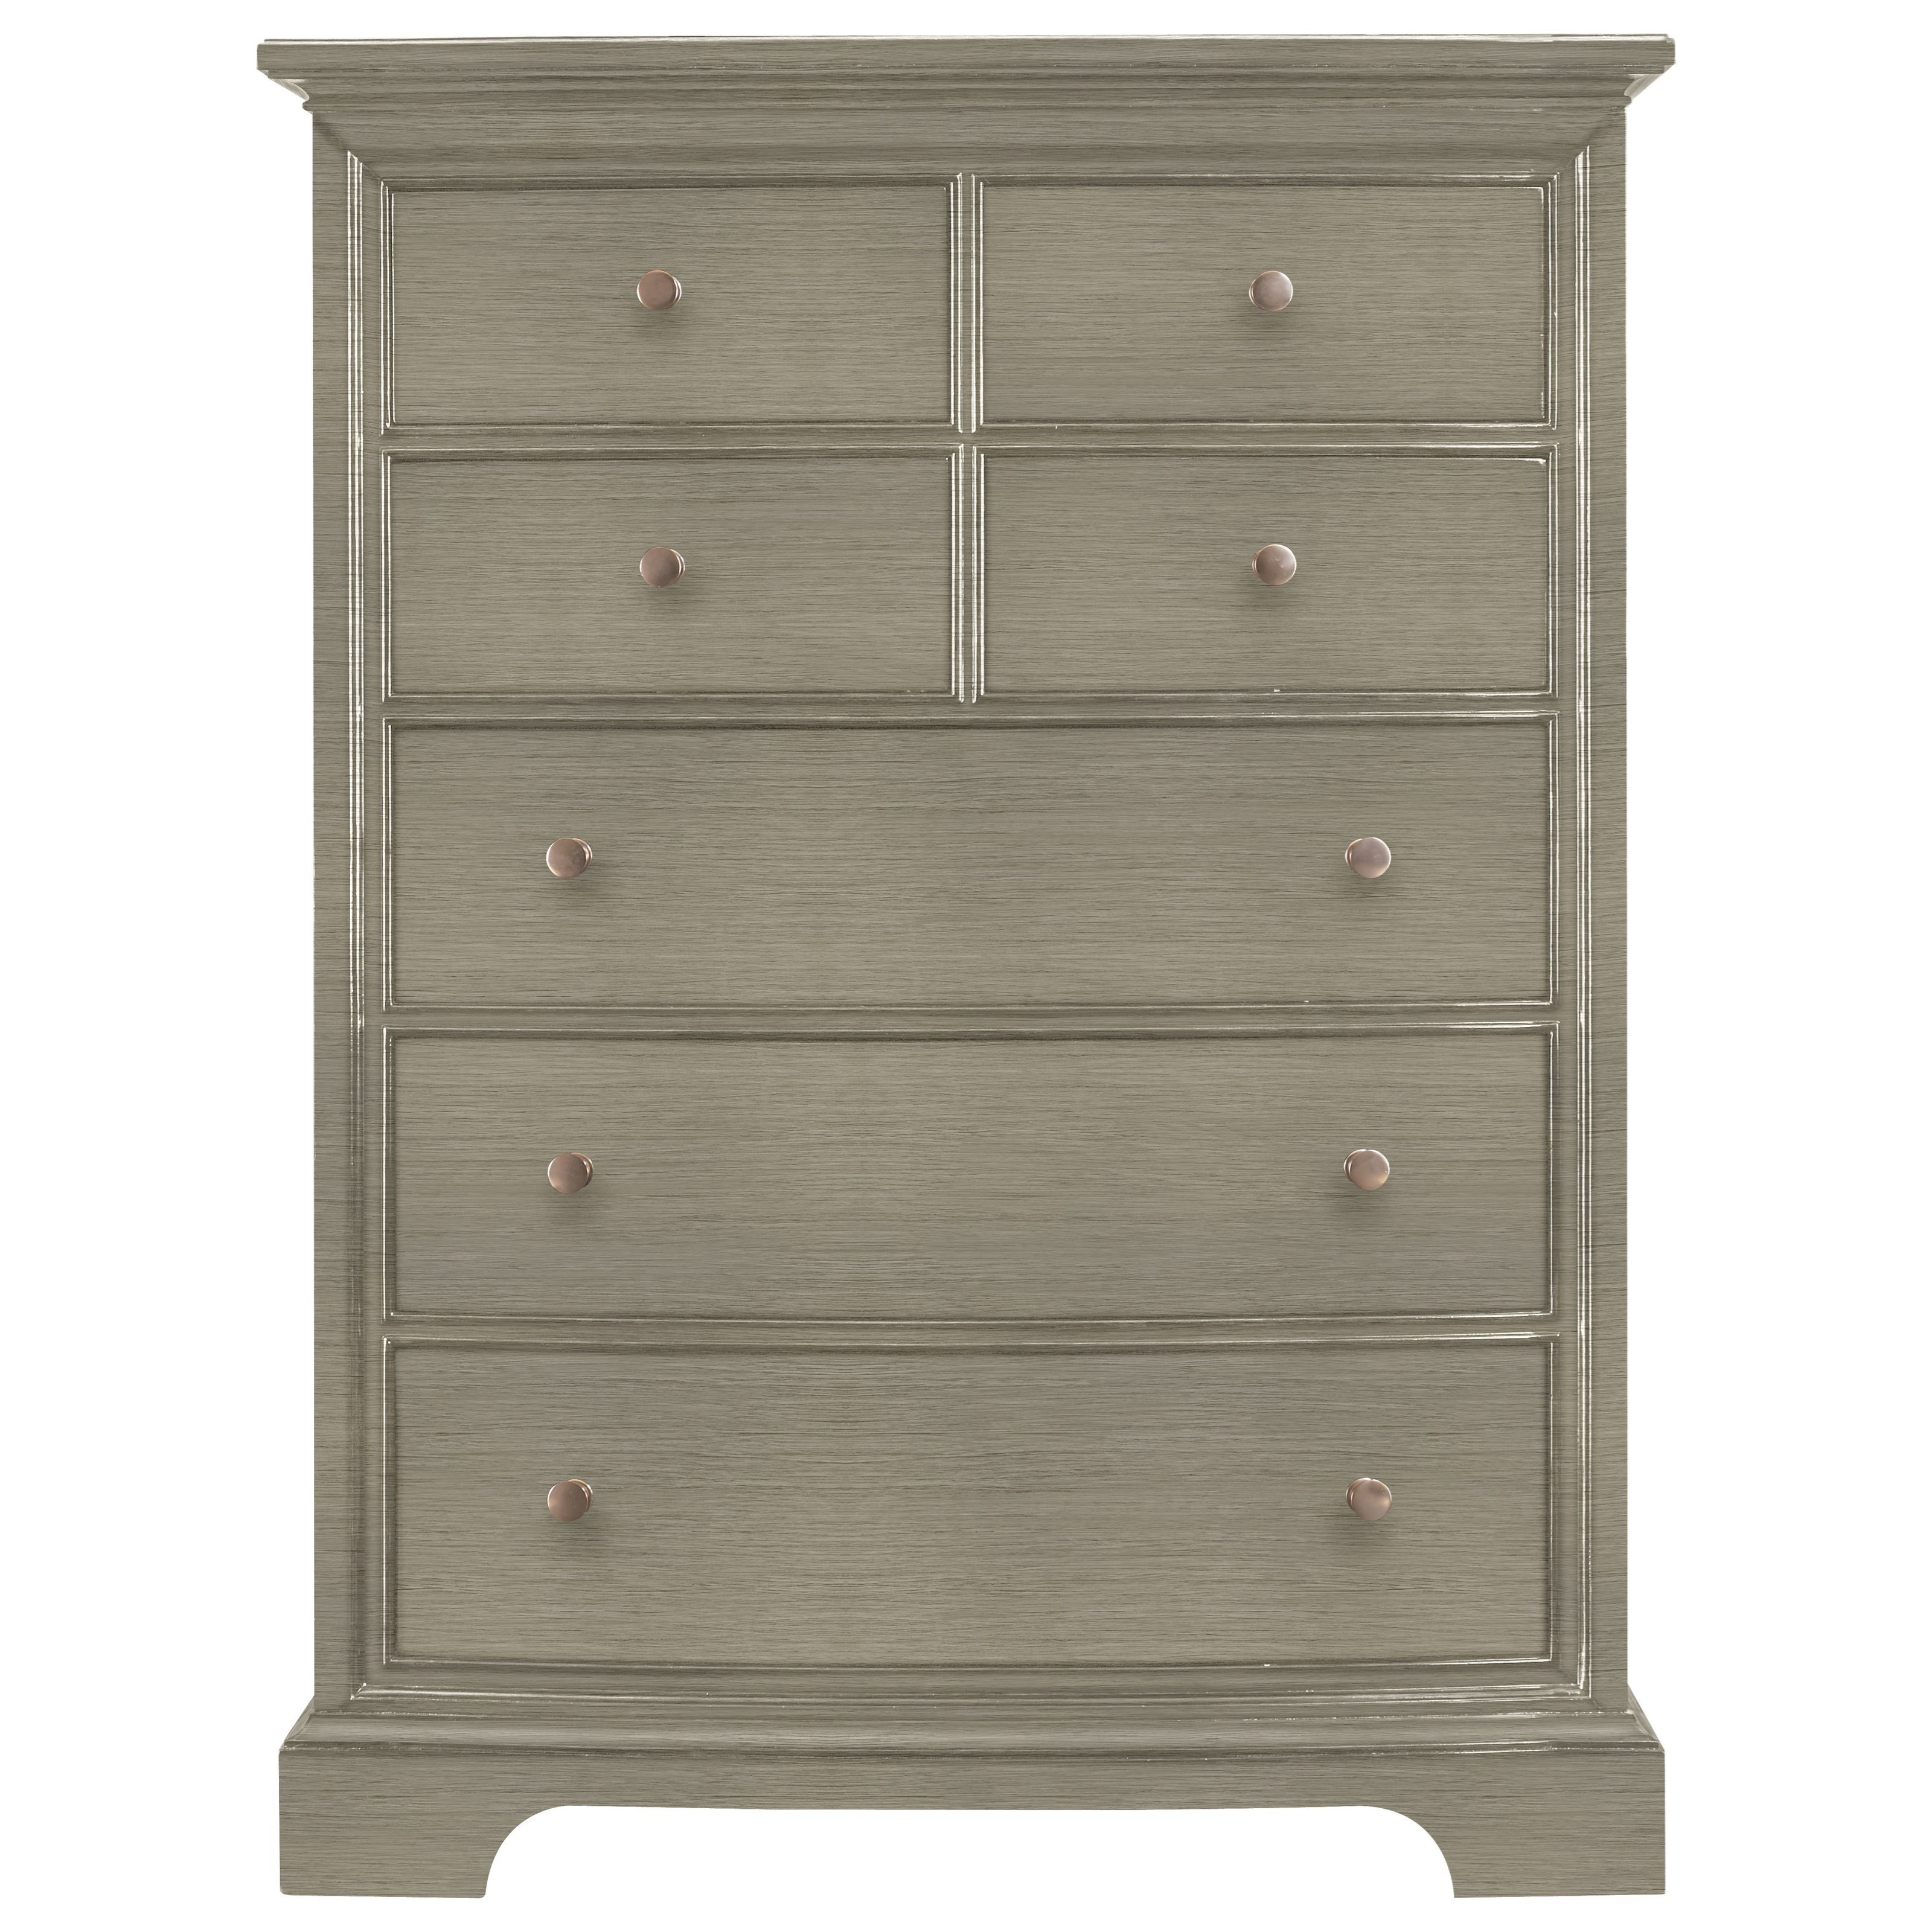 Stanley Furniture Transitional Drawer Chest - Item Number: 042-33-13